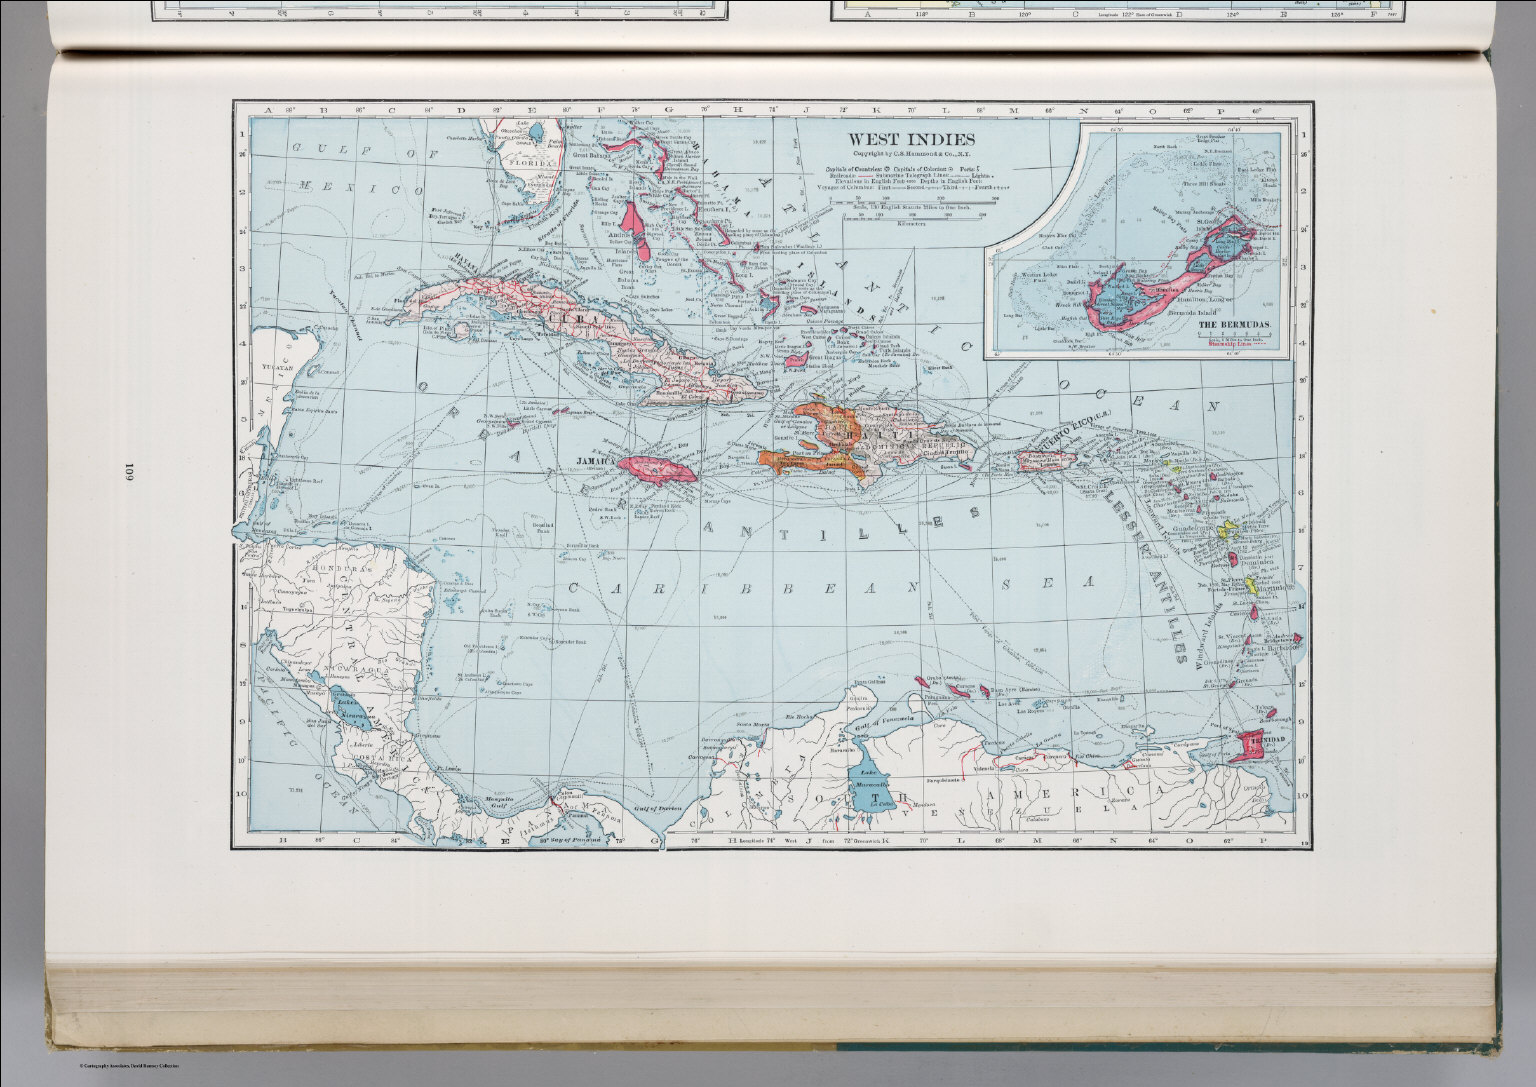 West indies david rumsey historical map collection west indies gumiabroncs Image collections